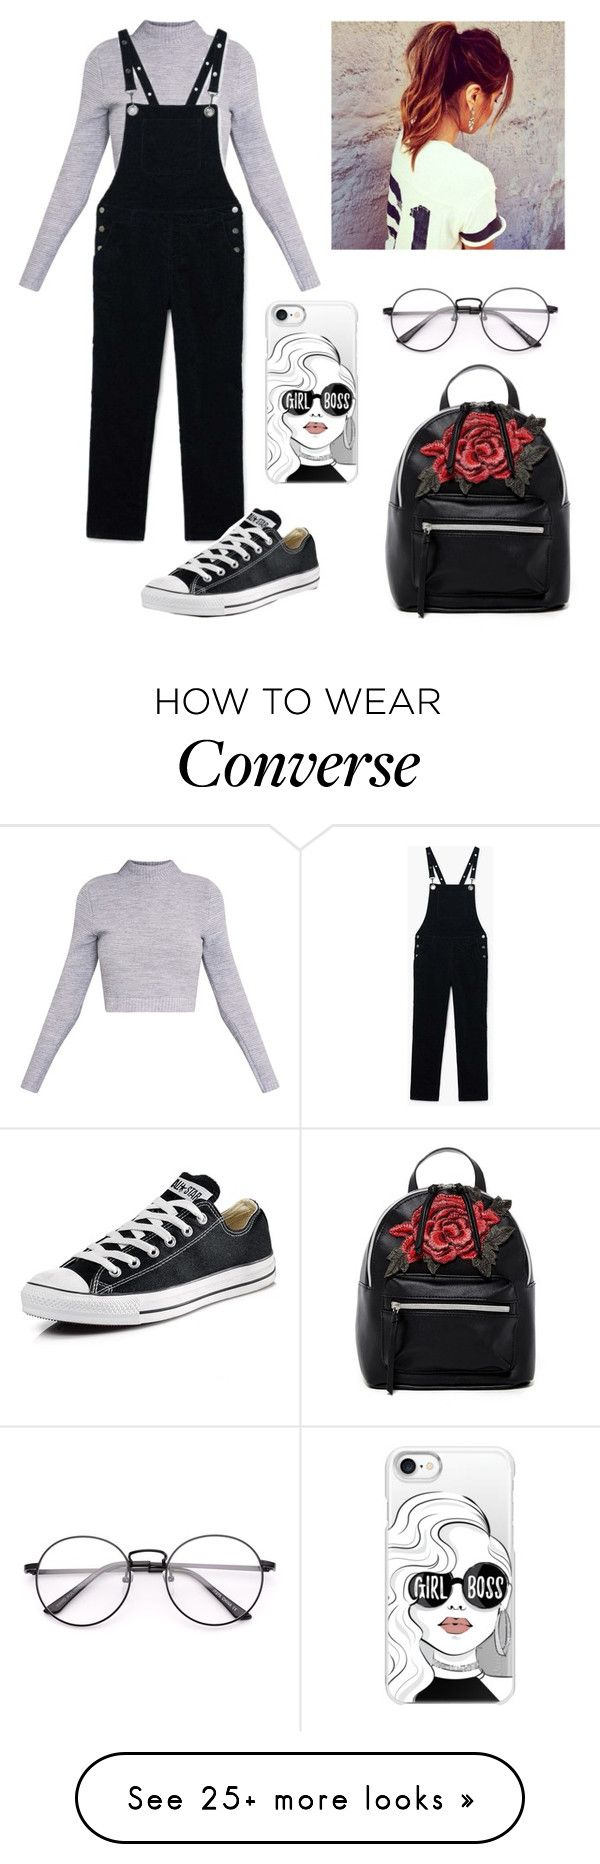 """Untitled #275"" by deppie-tom on Polyvore featuring MANGO, Converse, Casetify and T-shirt & Jeans"